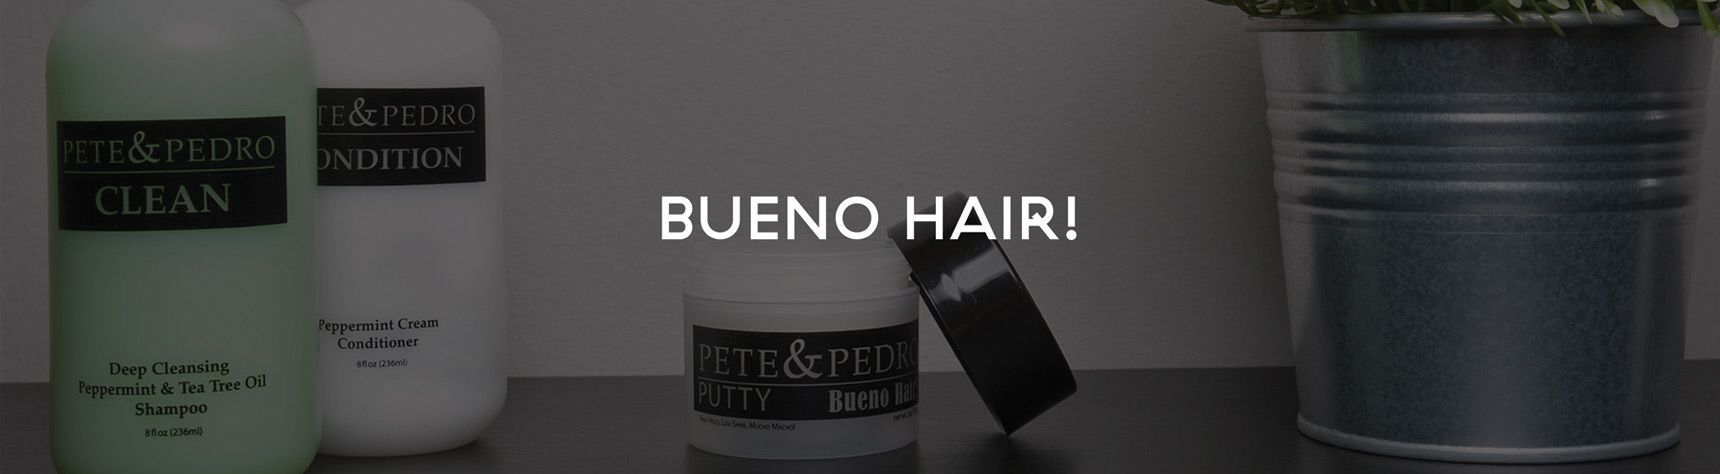 Pete and Pedro Bueno Hair